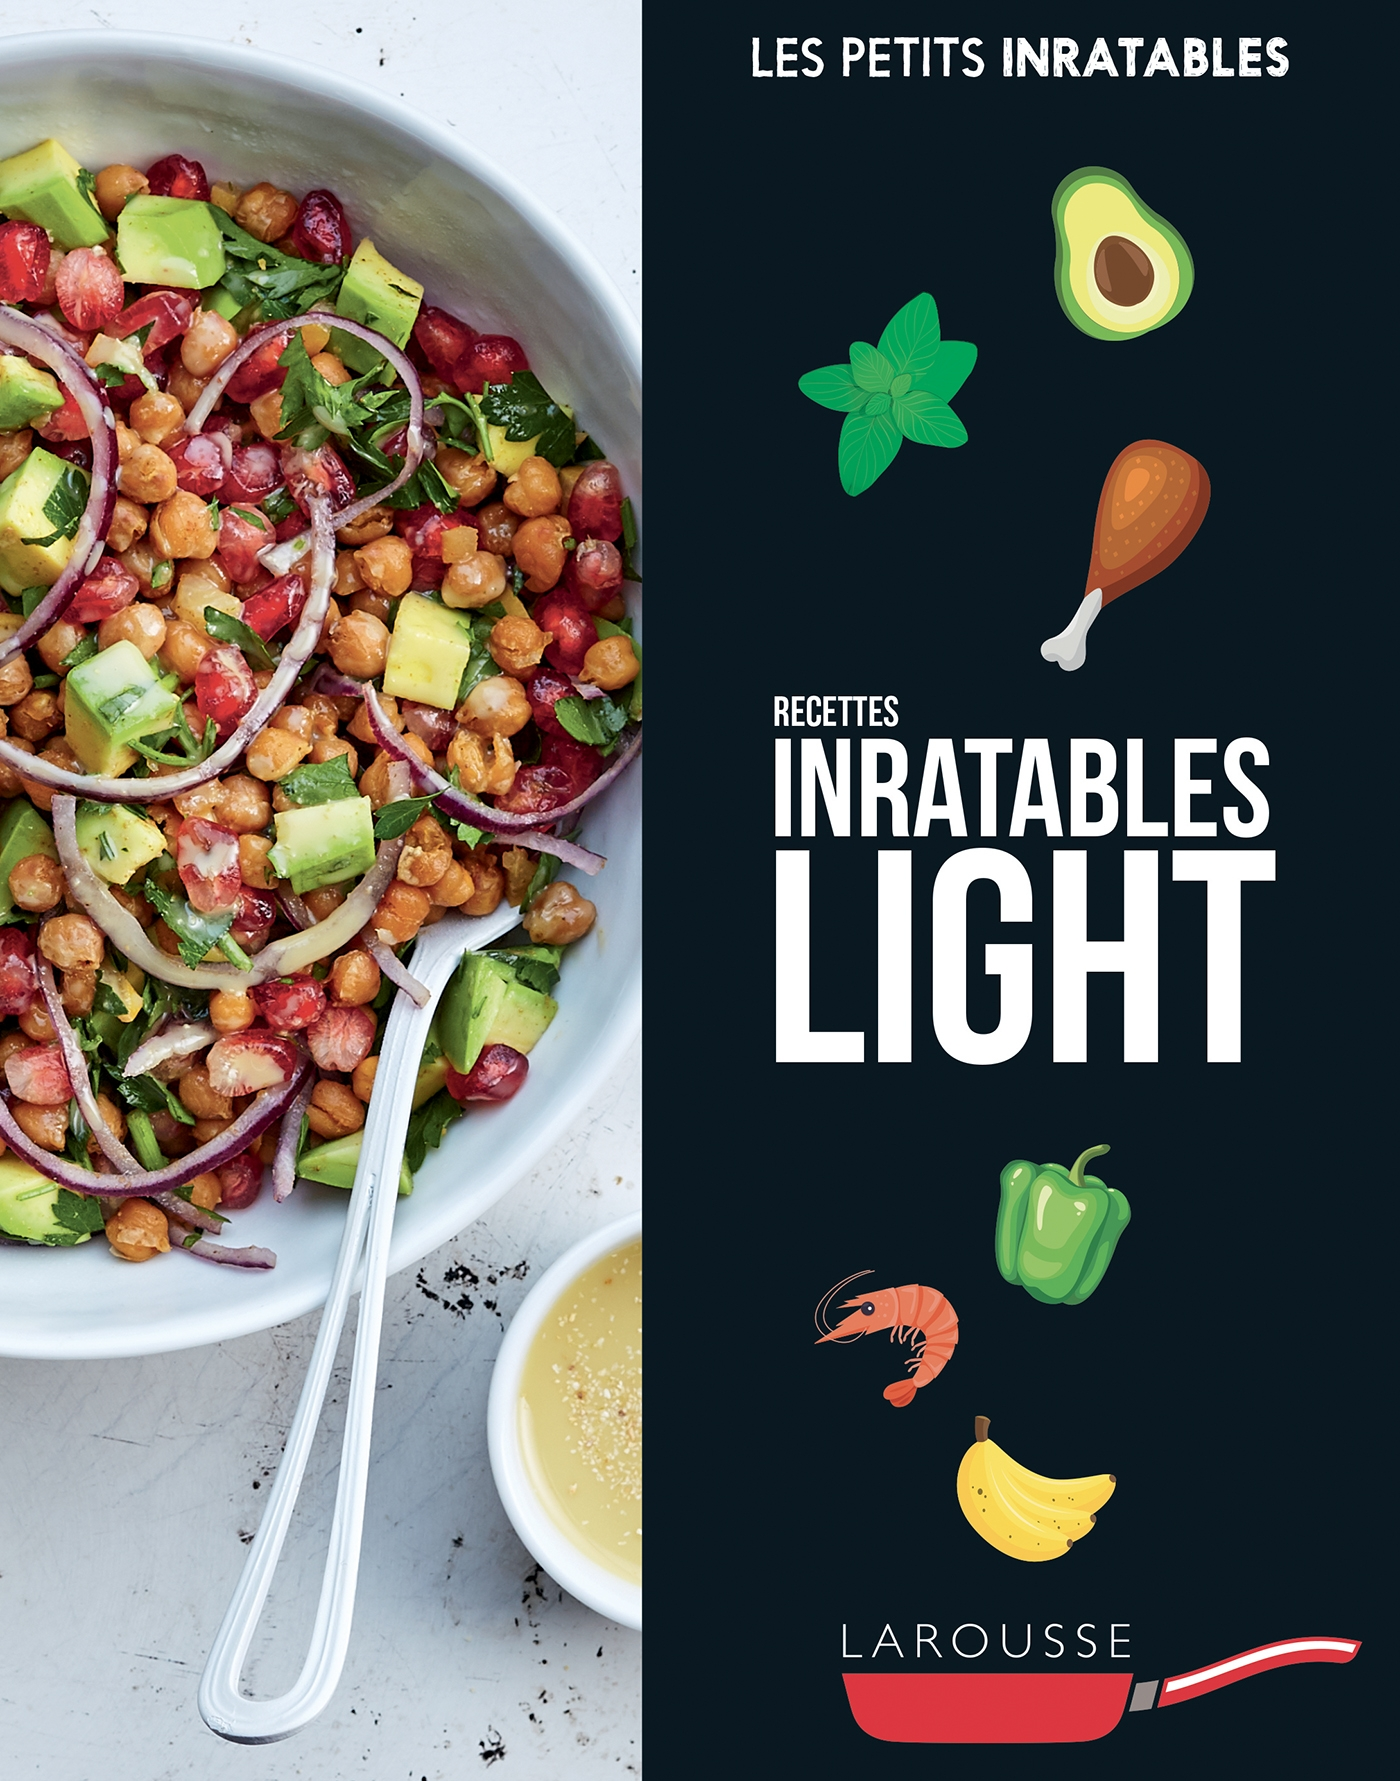 Recettes inratables light